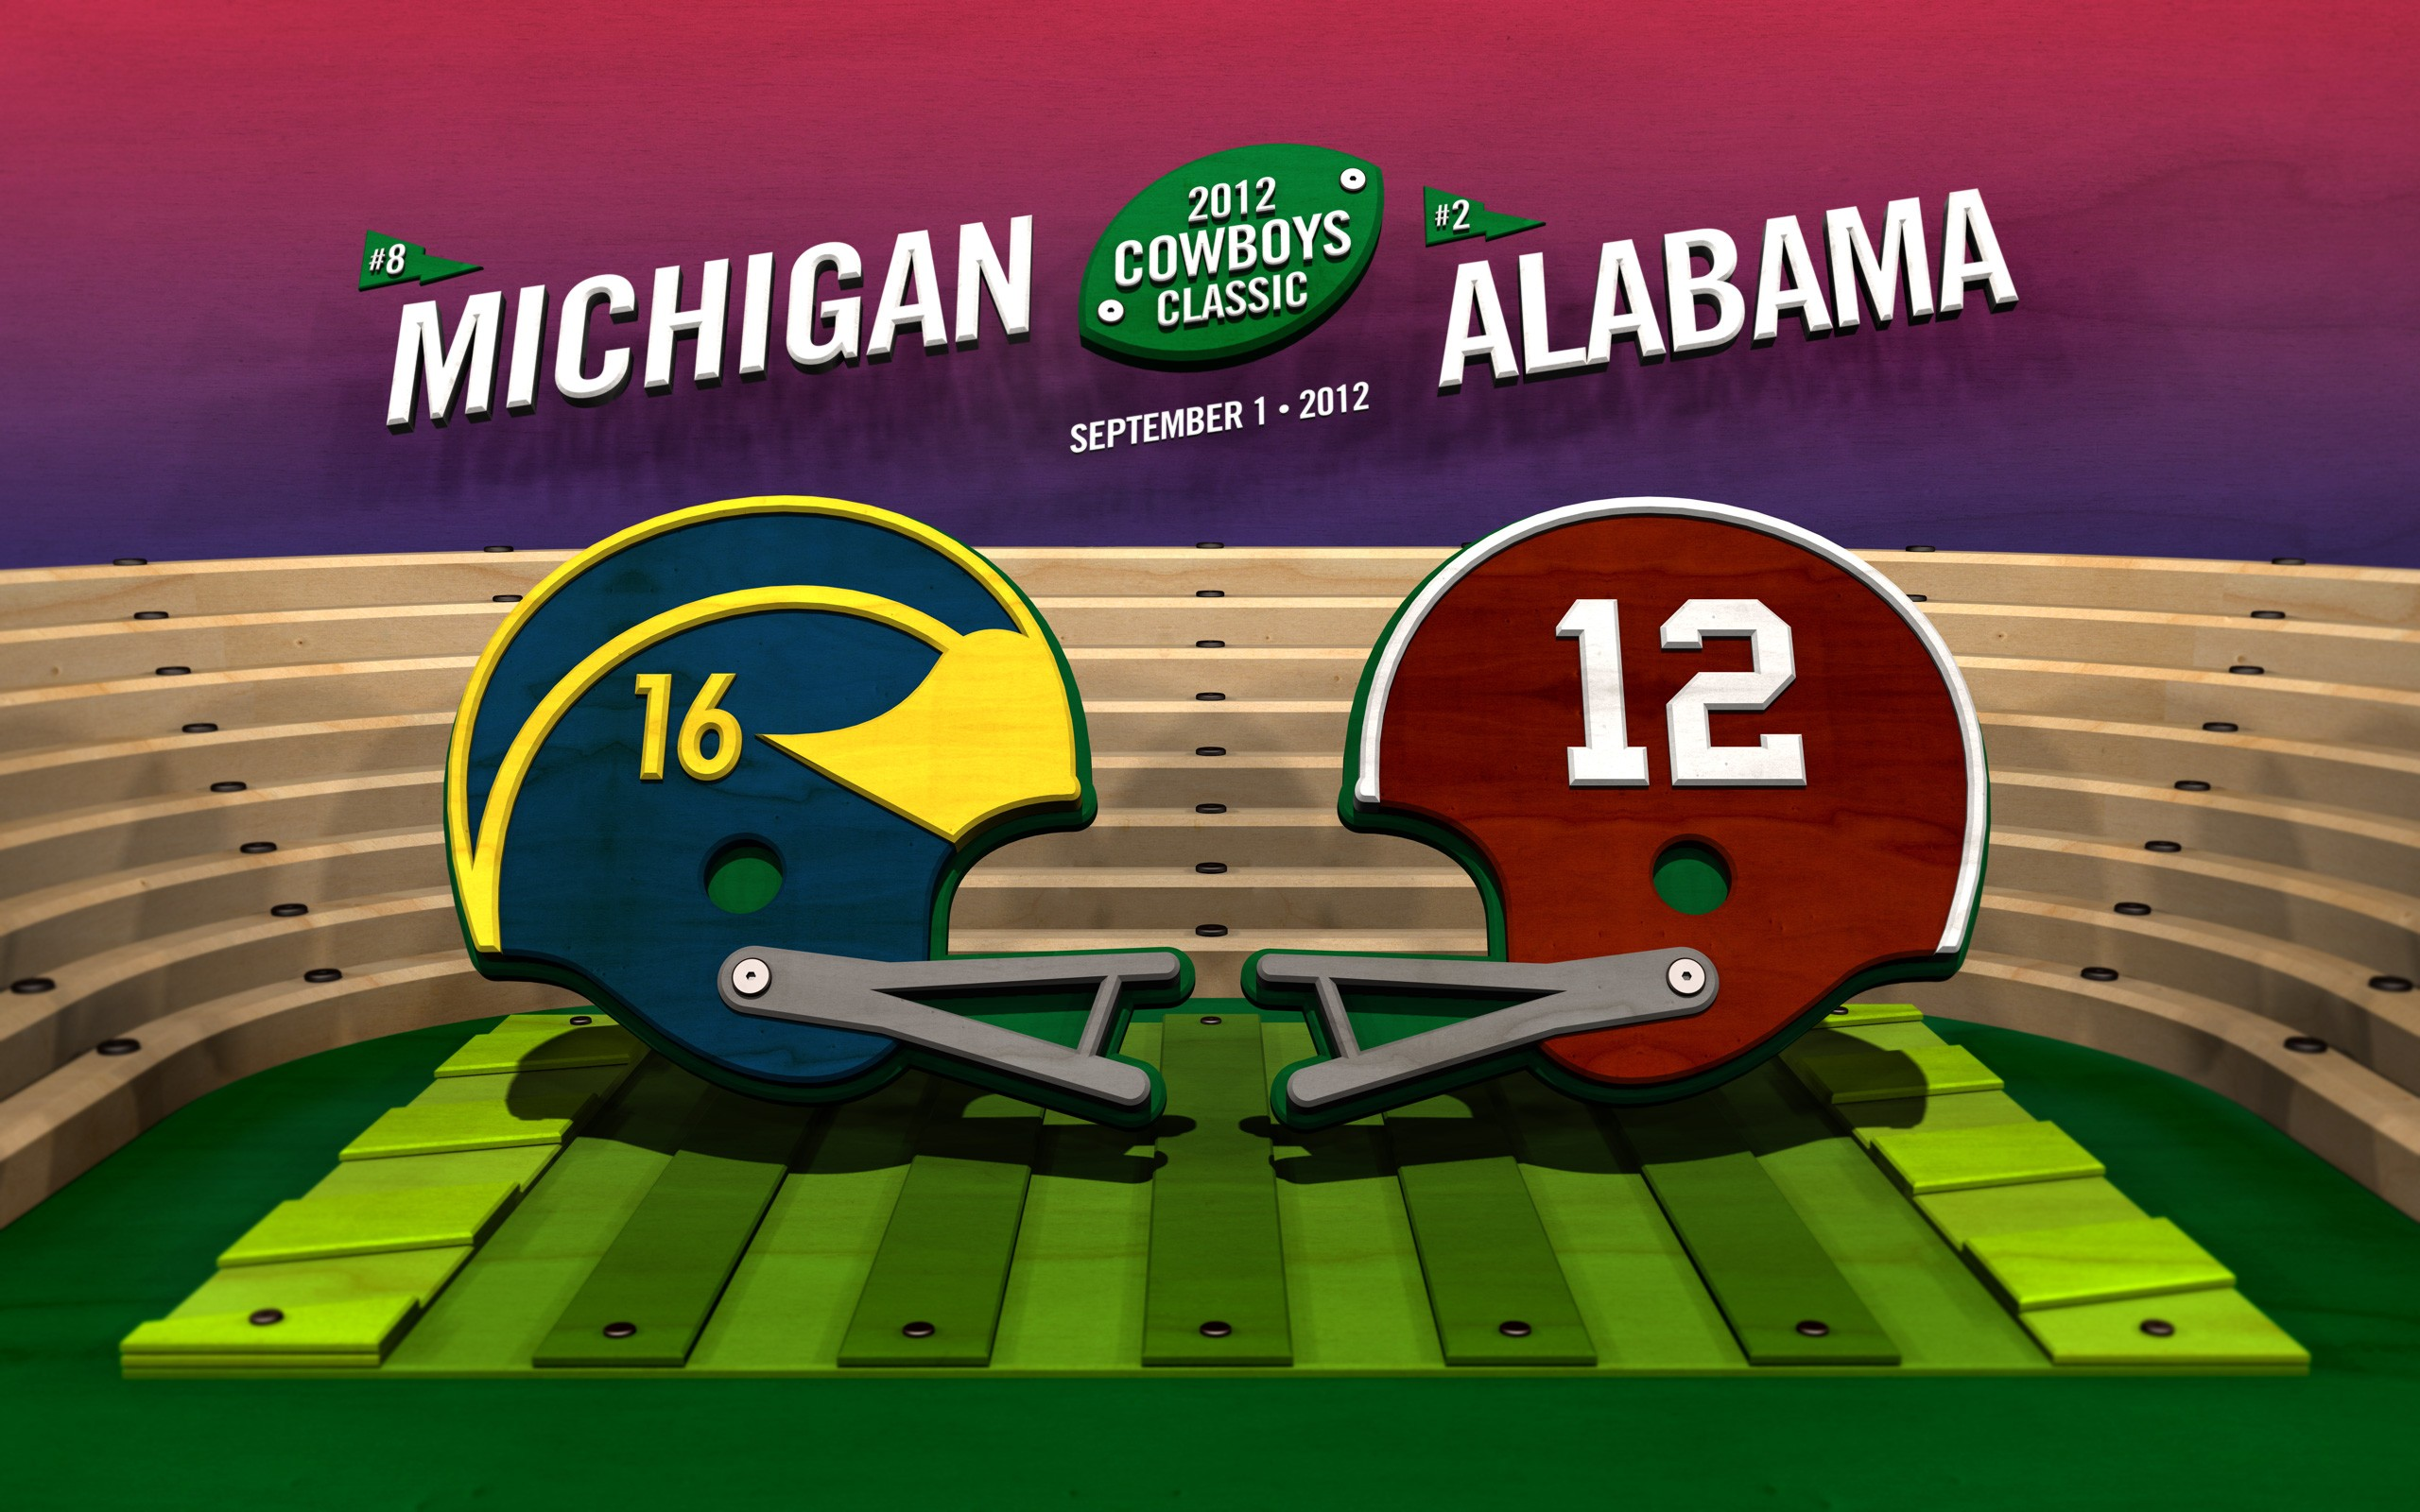 Michigan Football Wallpaper HD Alabama Widescreen Background 2560x1600